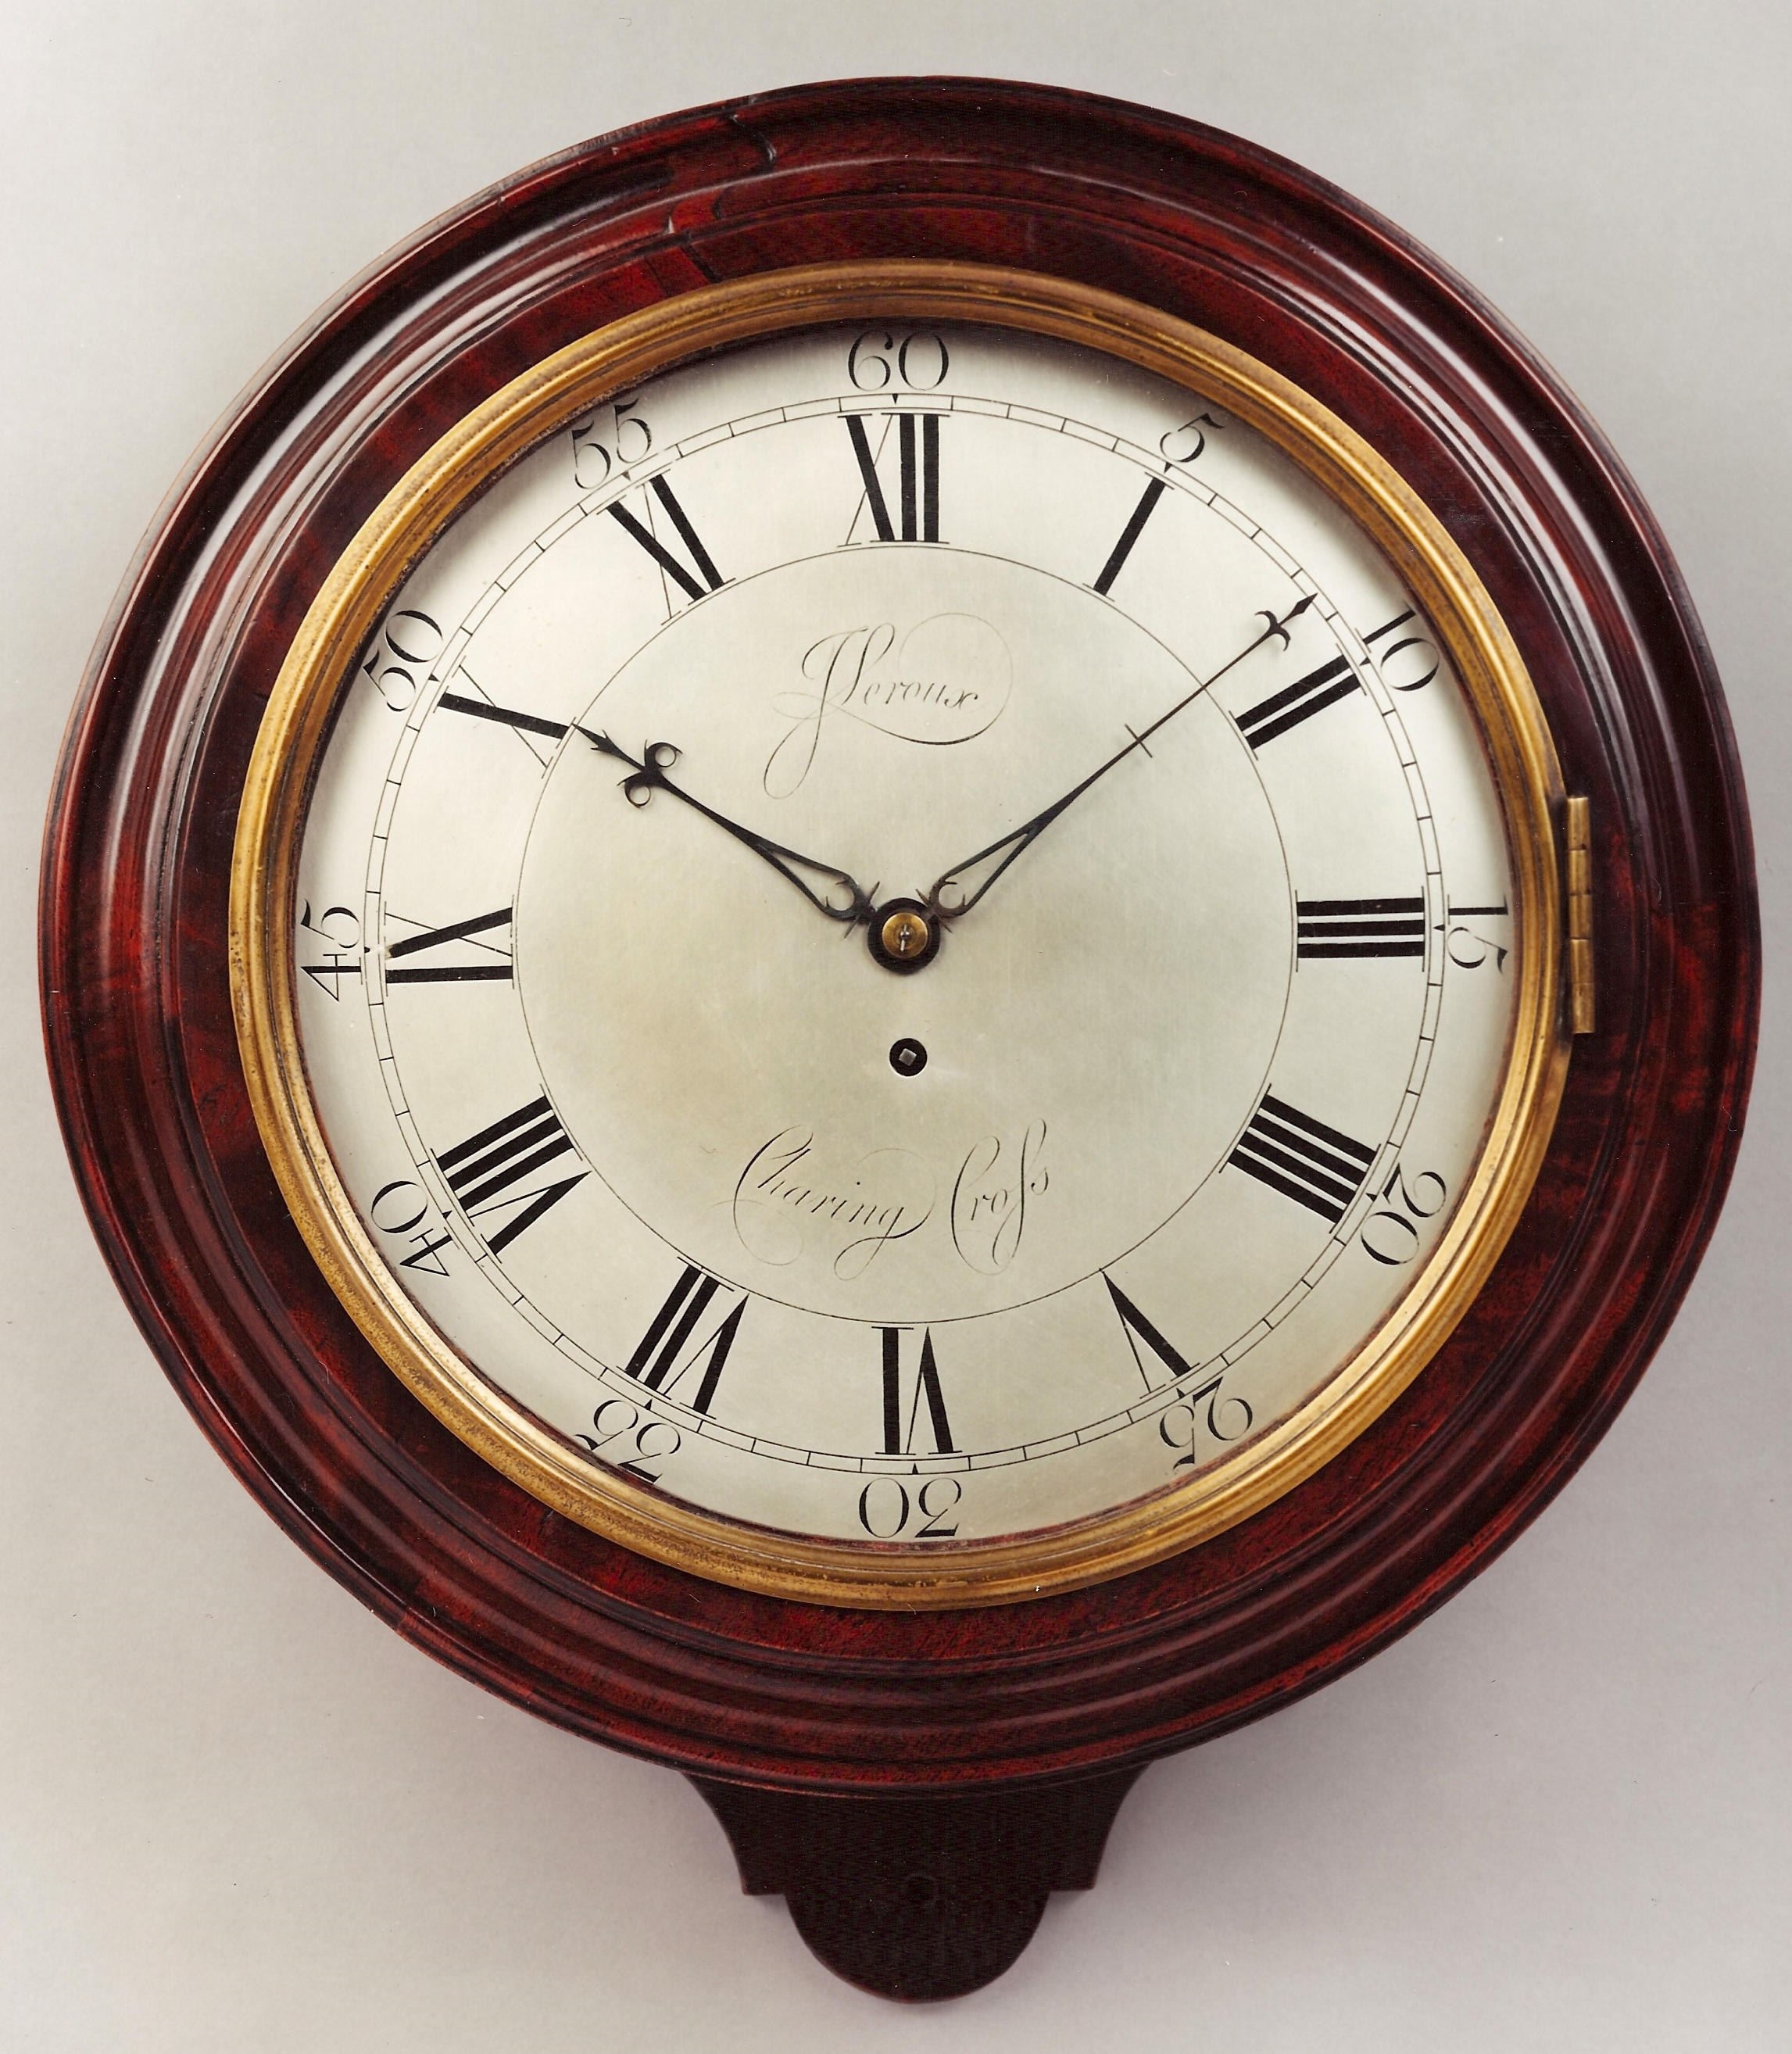 Georgian mahogany & silvered dial wall timepiece by J leroux, Charing Cross, London. Late 18th century. Raffety Ltd.